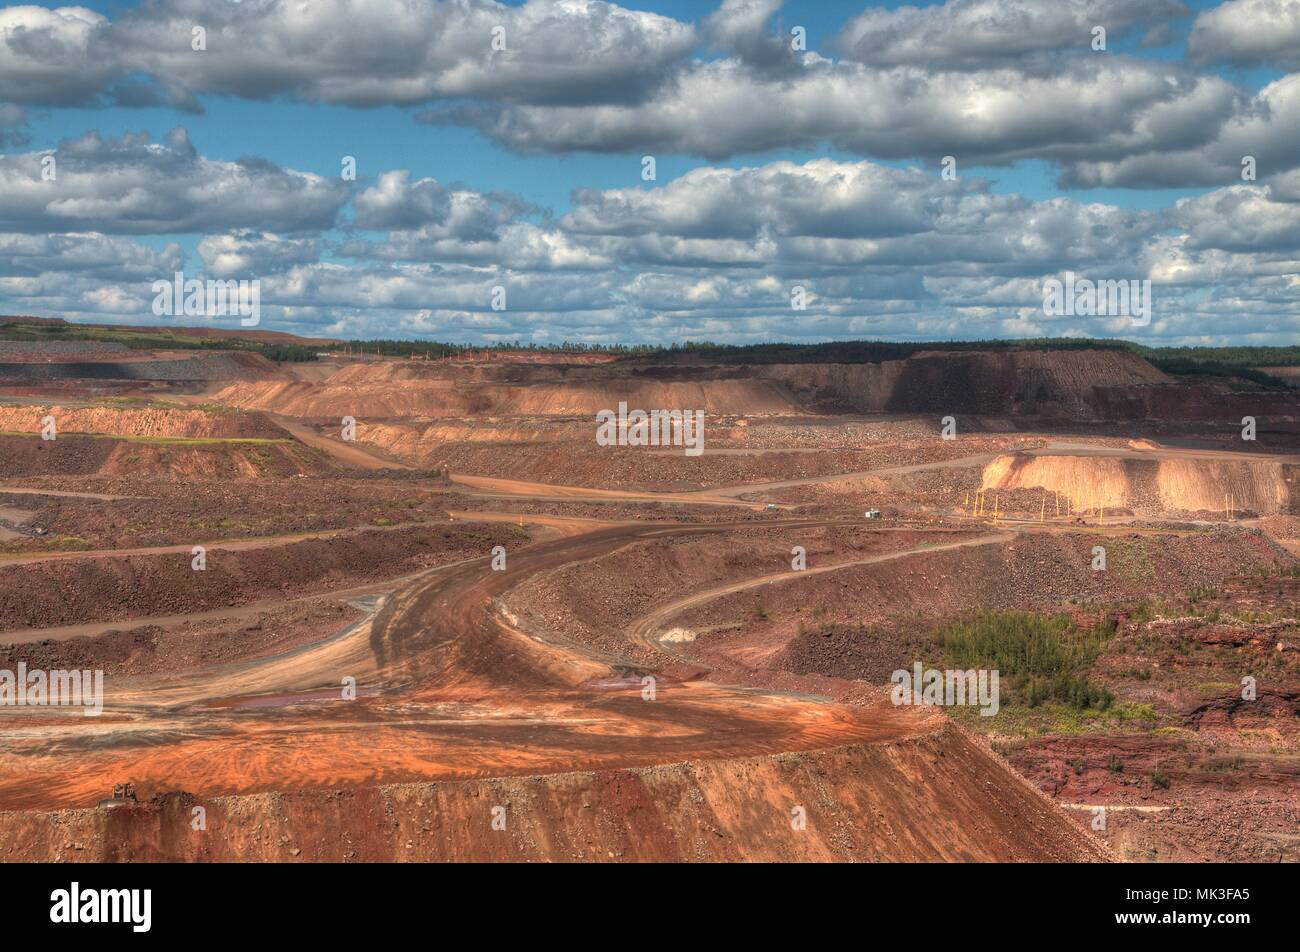 Hibbing, Minnesota has one of the largest open pit mines. - Stock Image